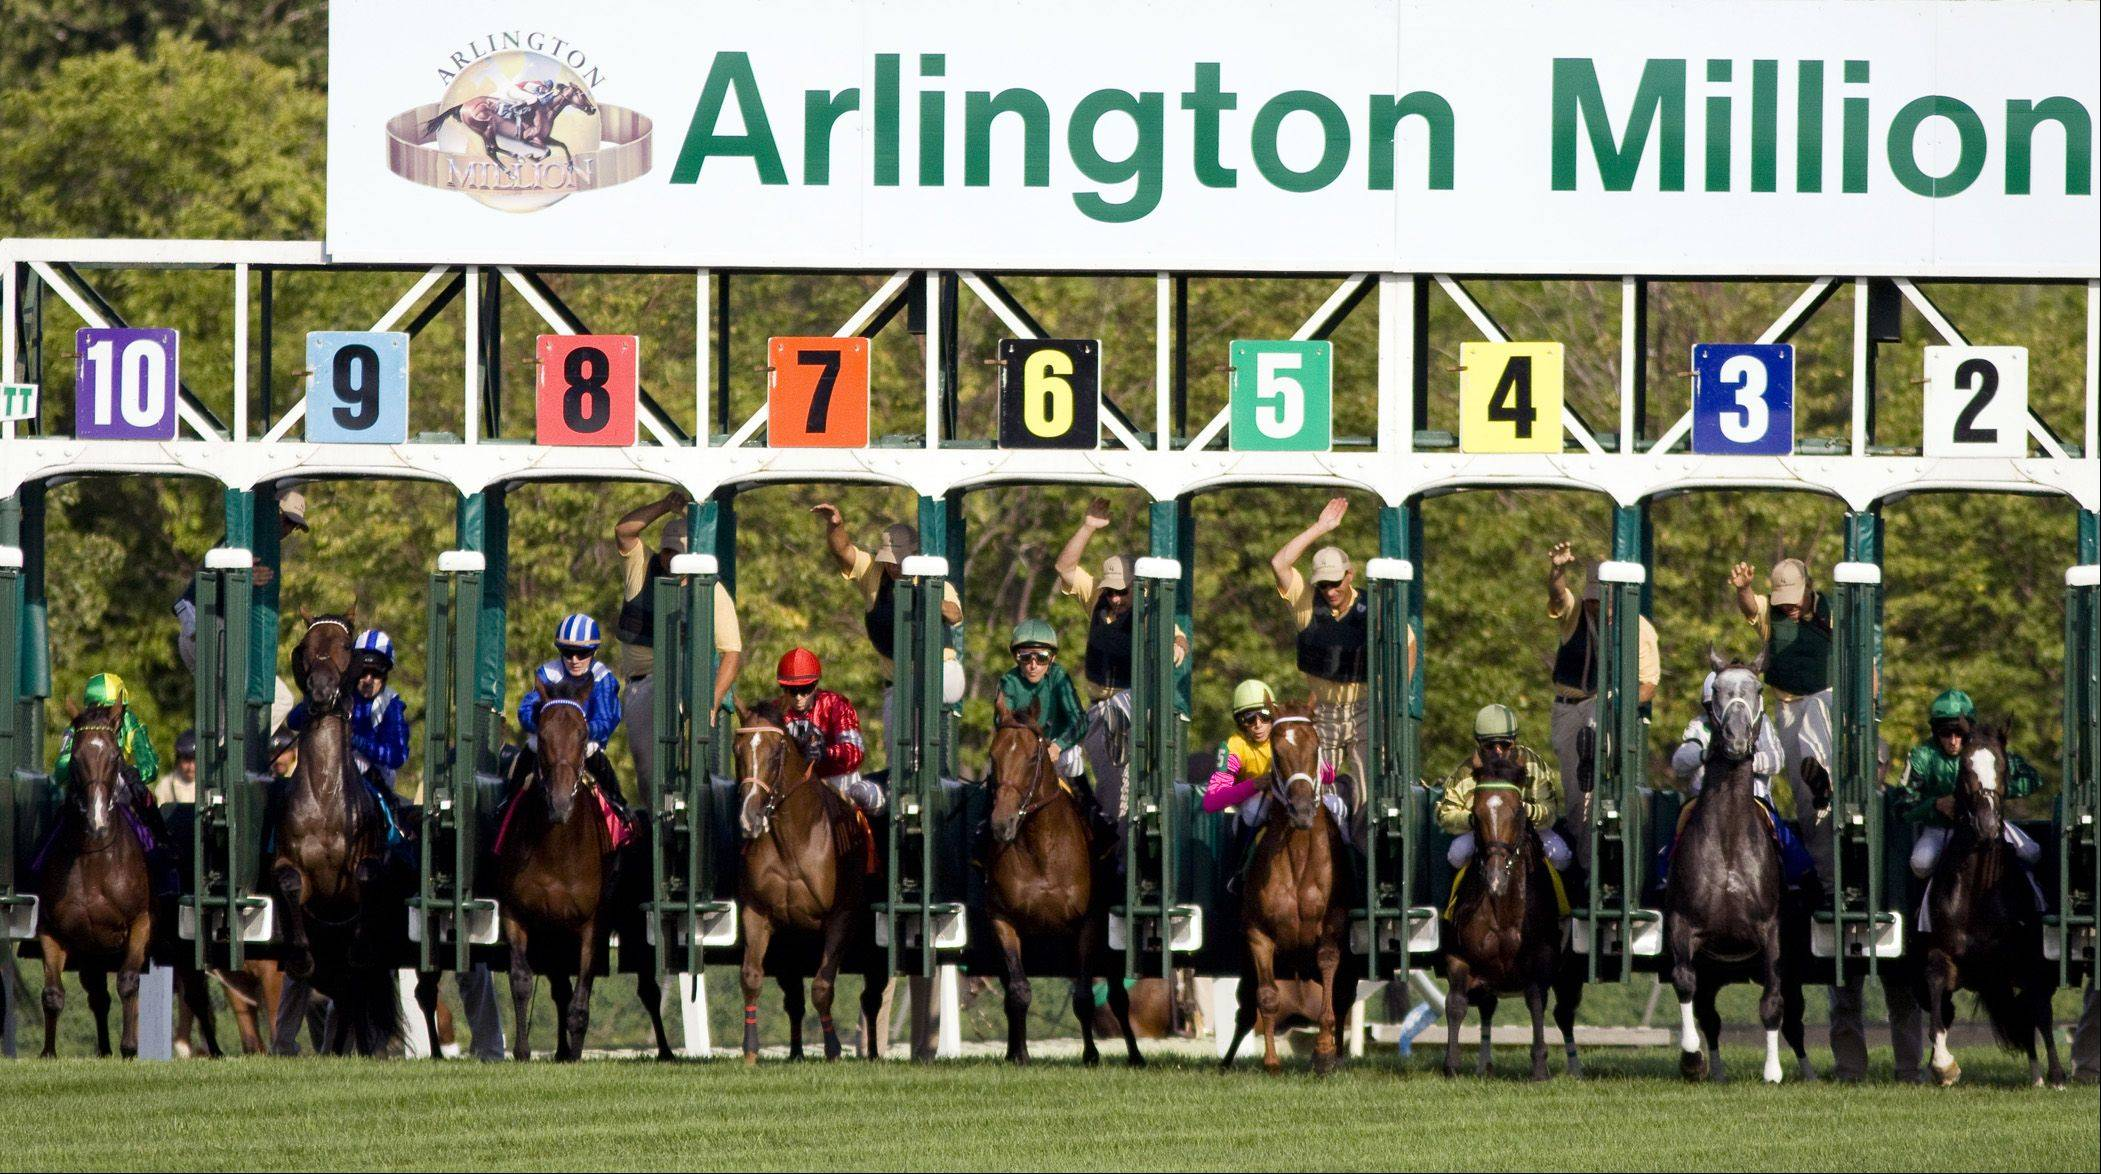 Photo courtesy of FourFootedFotos ¬It's not Million Day, but it's the next best thing when Arlington Park hosts Million Preview Day on Saturday